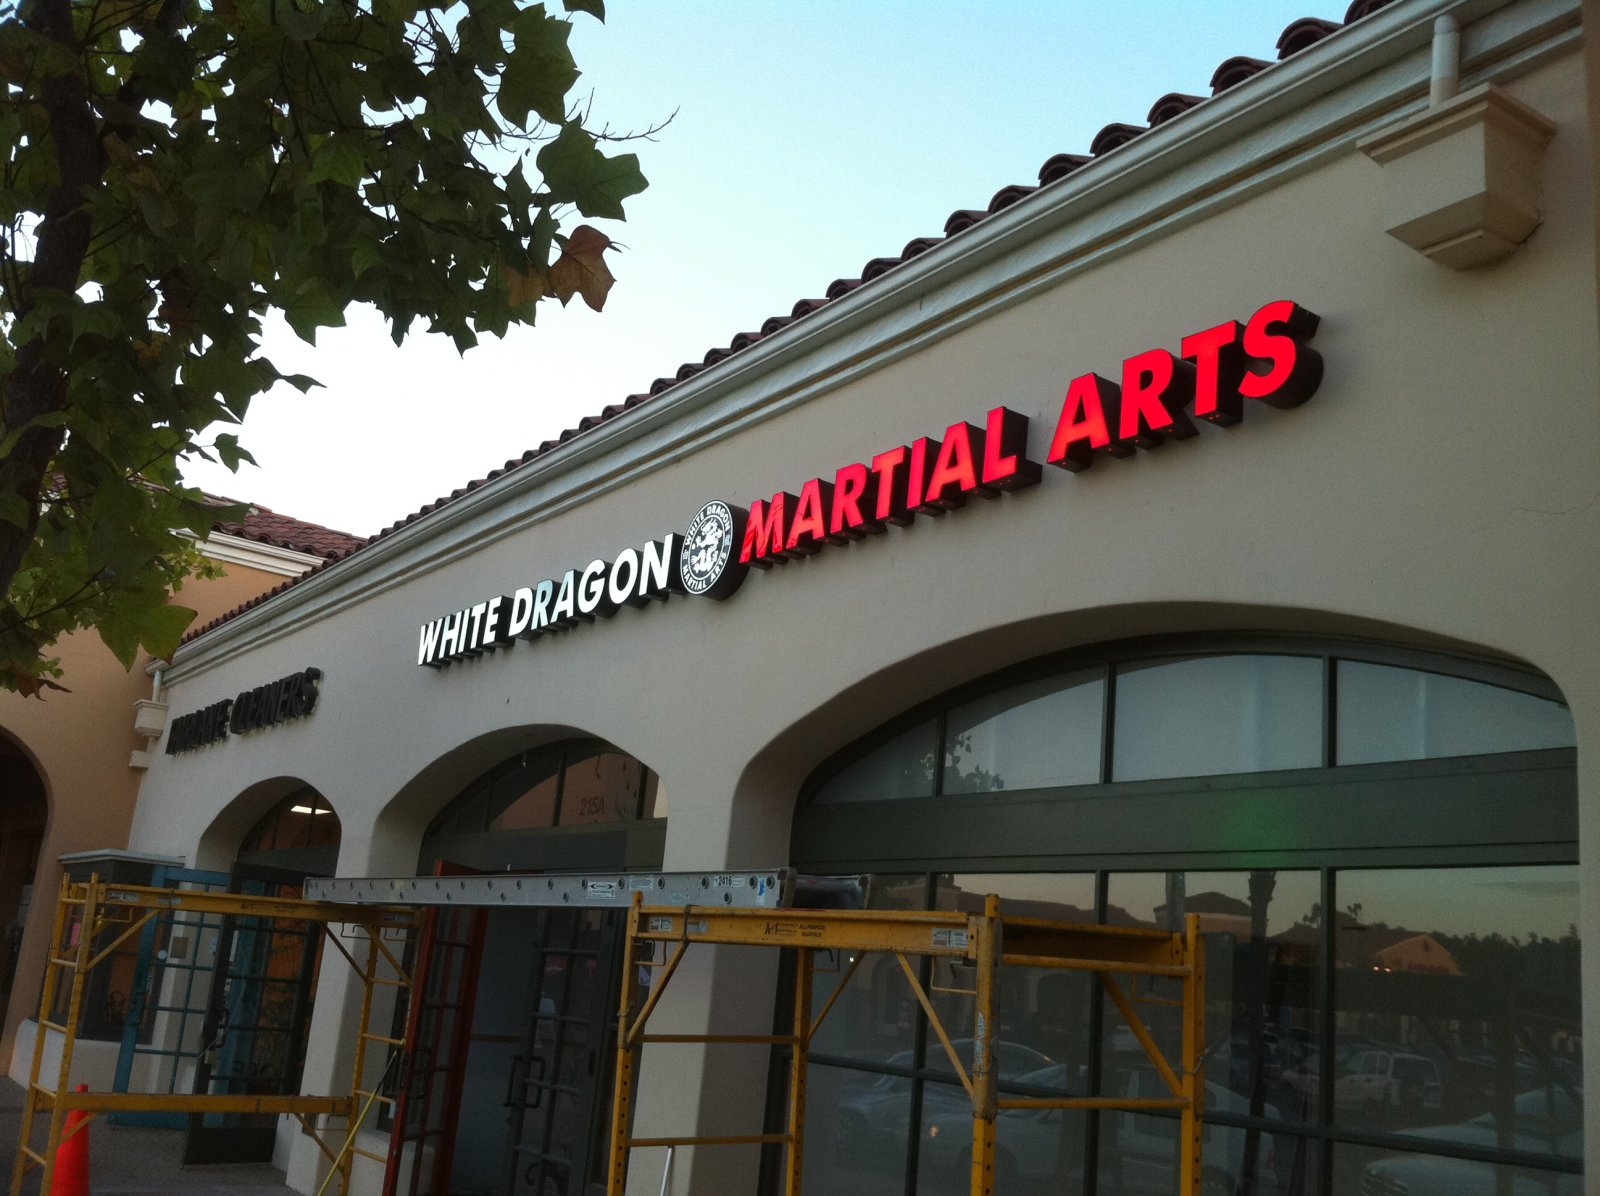 White Dragon Martial Arts - Chula Vista, CA